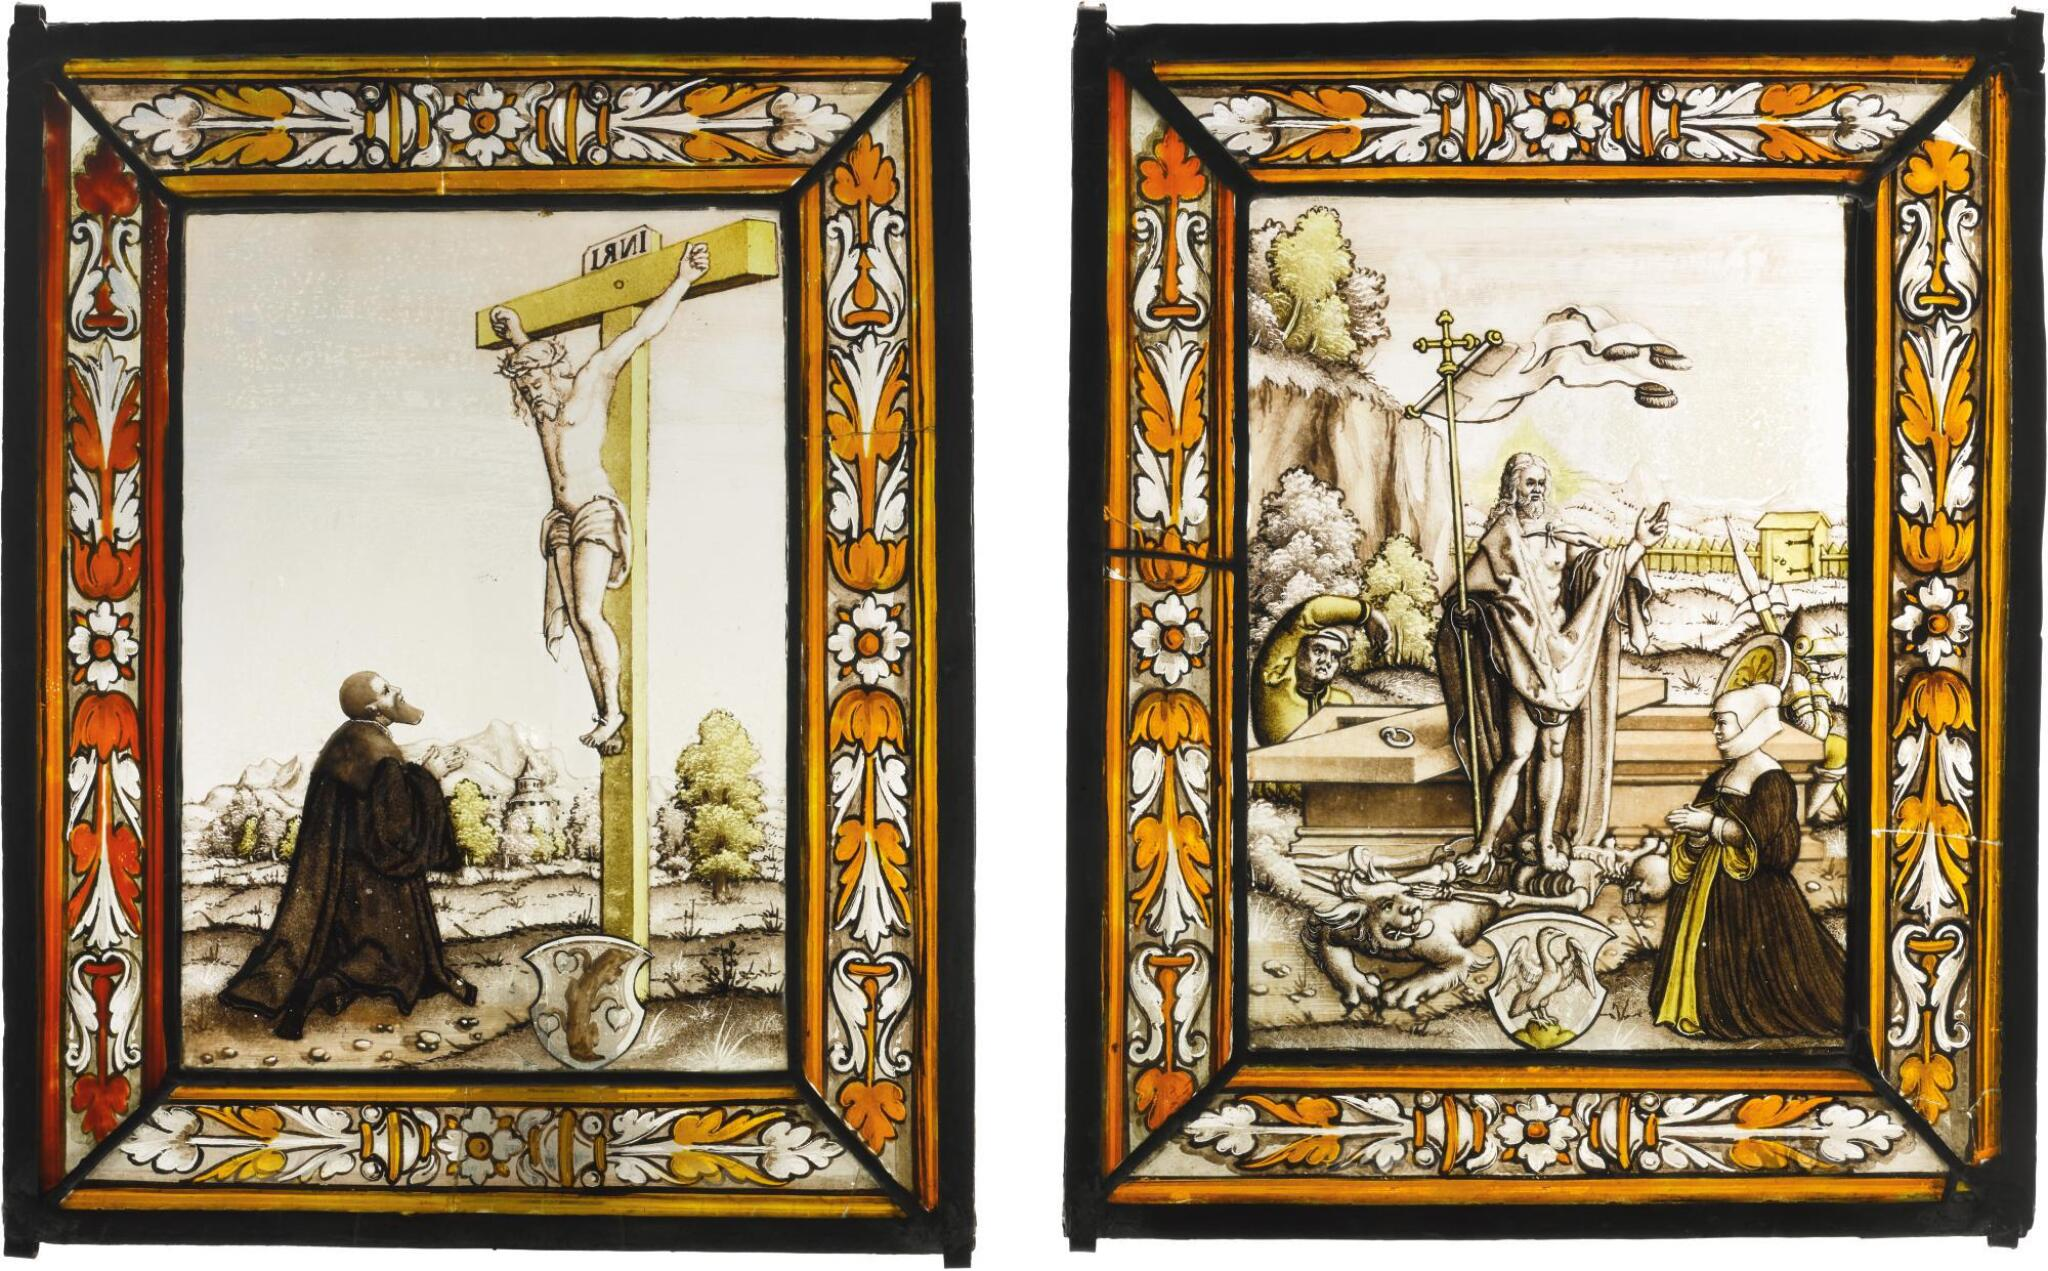 SOUTHERN GERMAN OR AUSTRIAN, CIRCA 1520   PAIR OF PANELS WITH THE CRUCIFIXION AND THE RESURRECTION